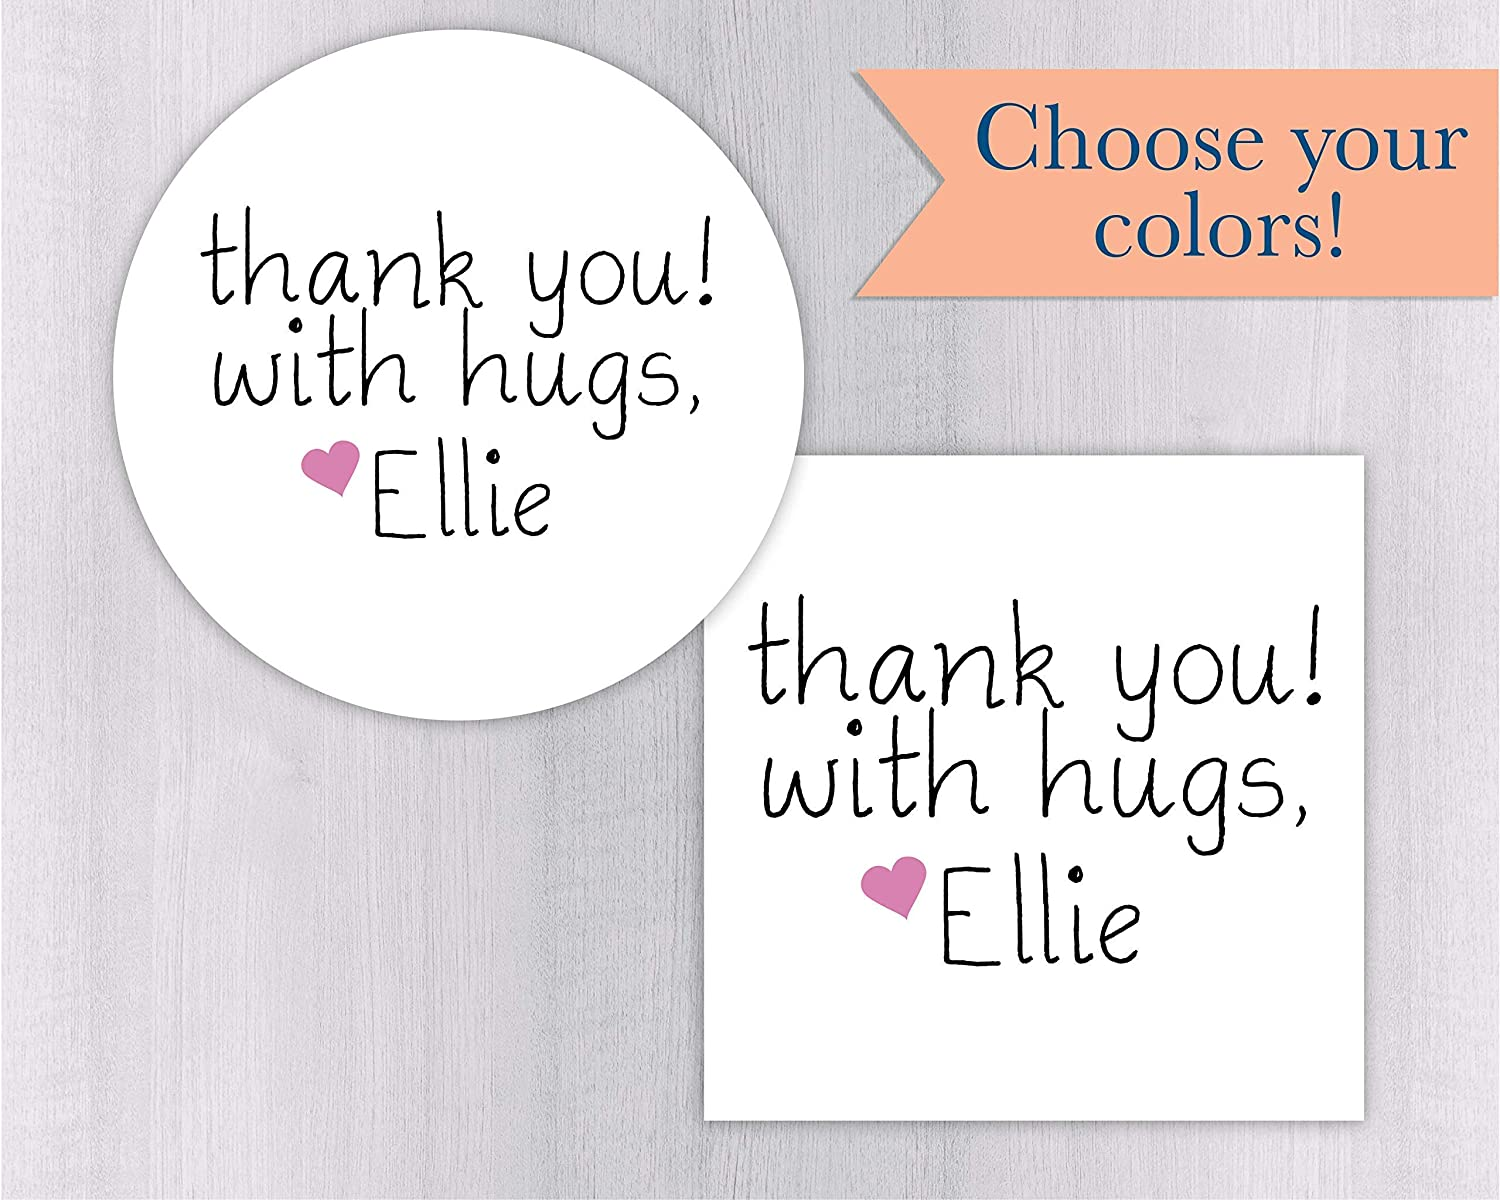 Amazon com thank you with hugs thank you hugs sticker favors thank you stickers printable stickers 099 wh handmade